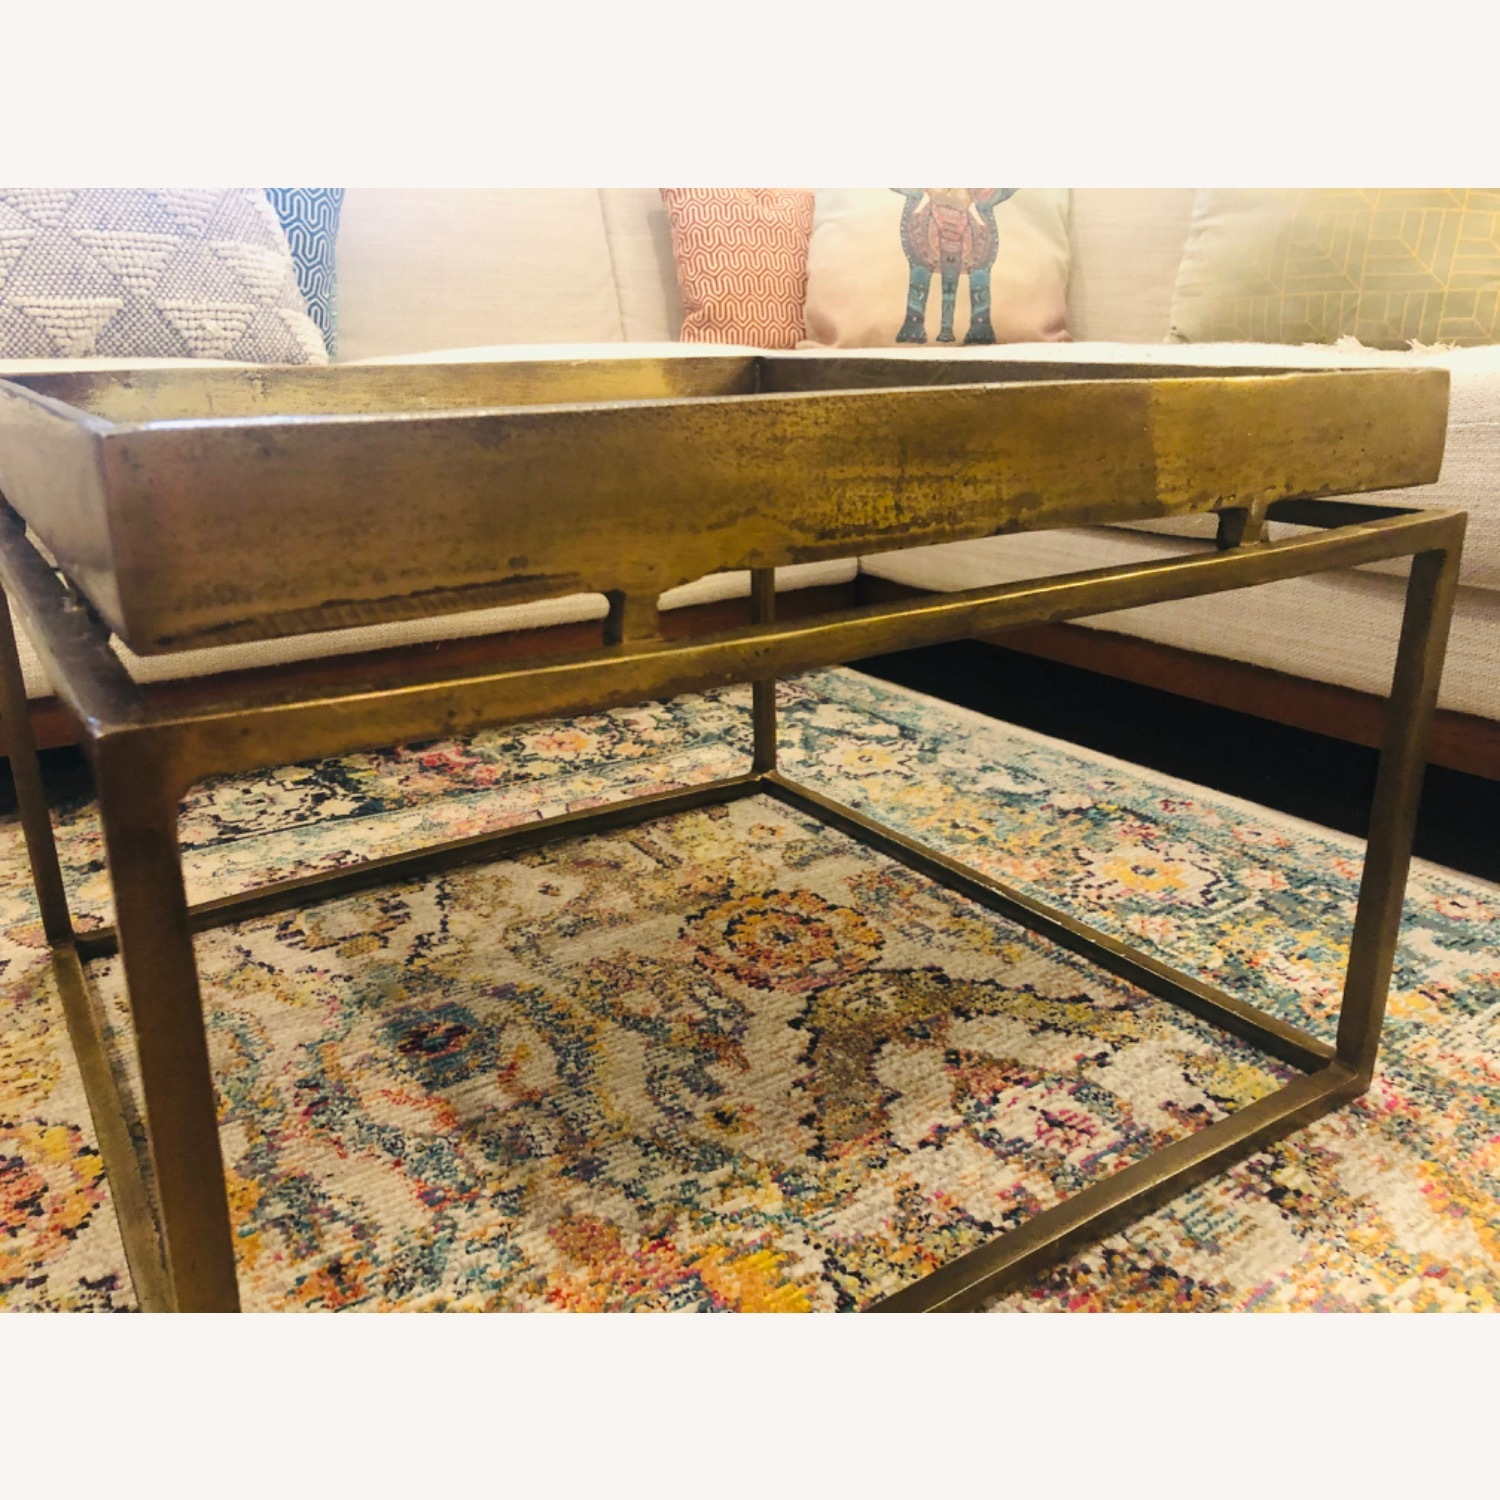 Crate & Barrel Antique Brass Bunching Table - image-4